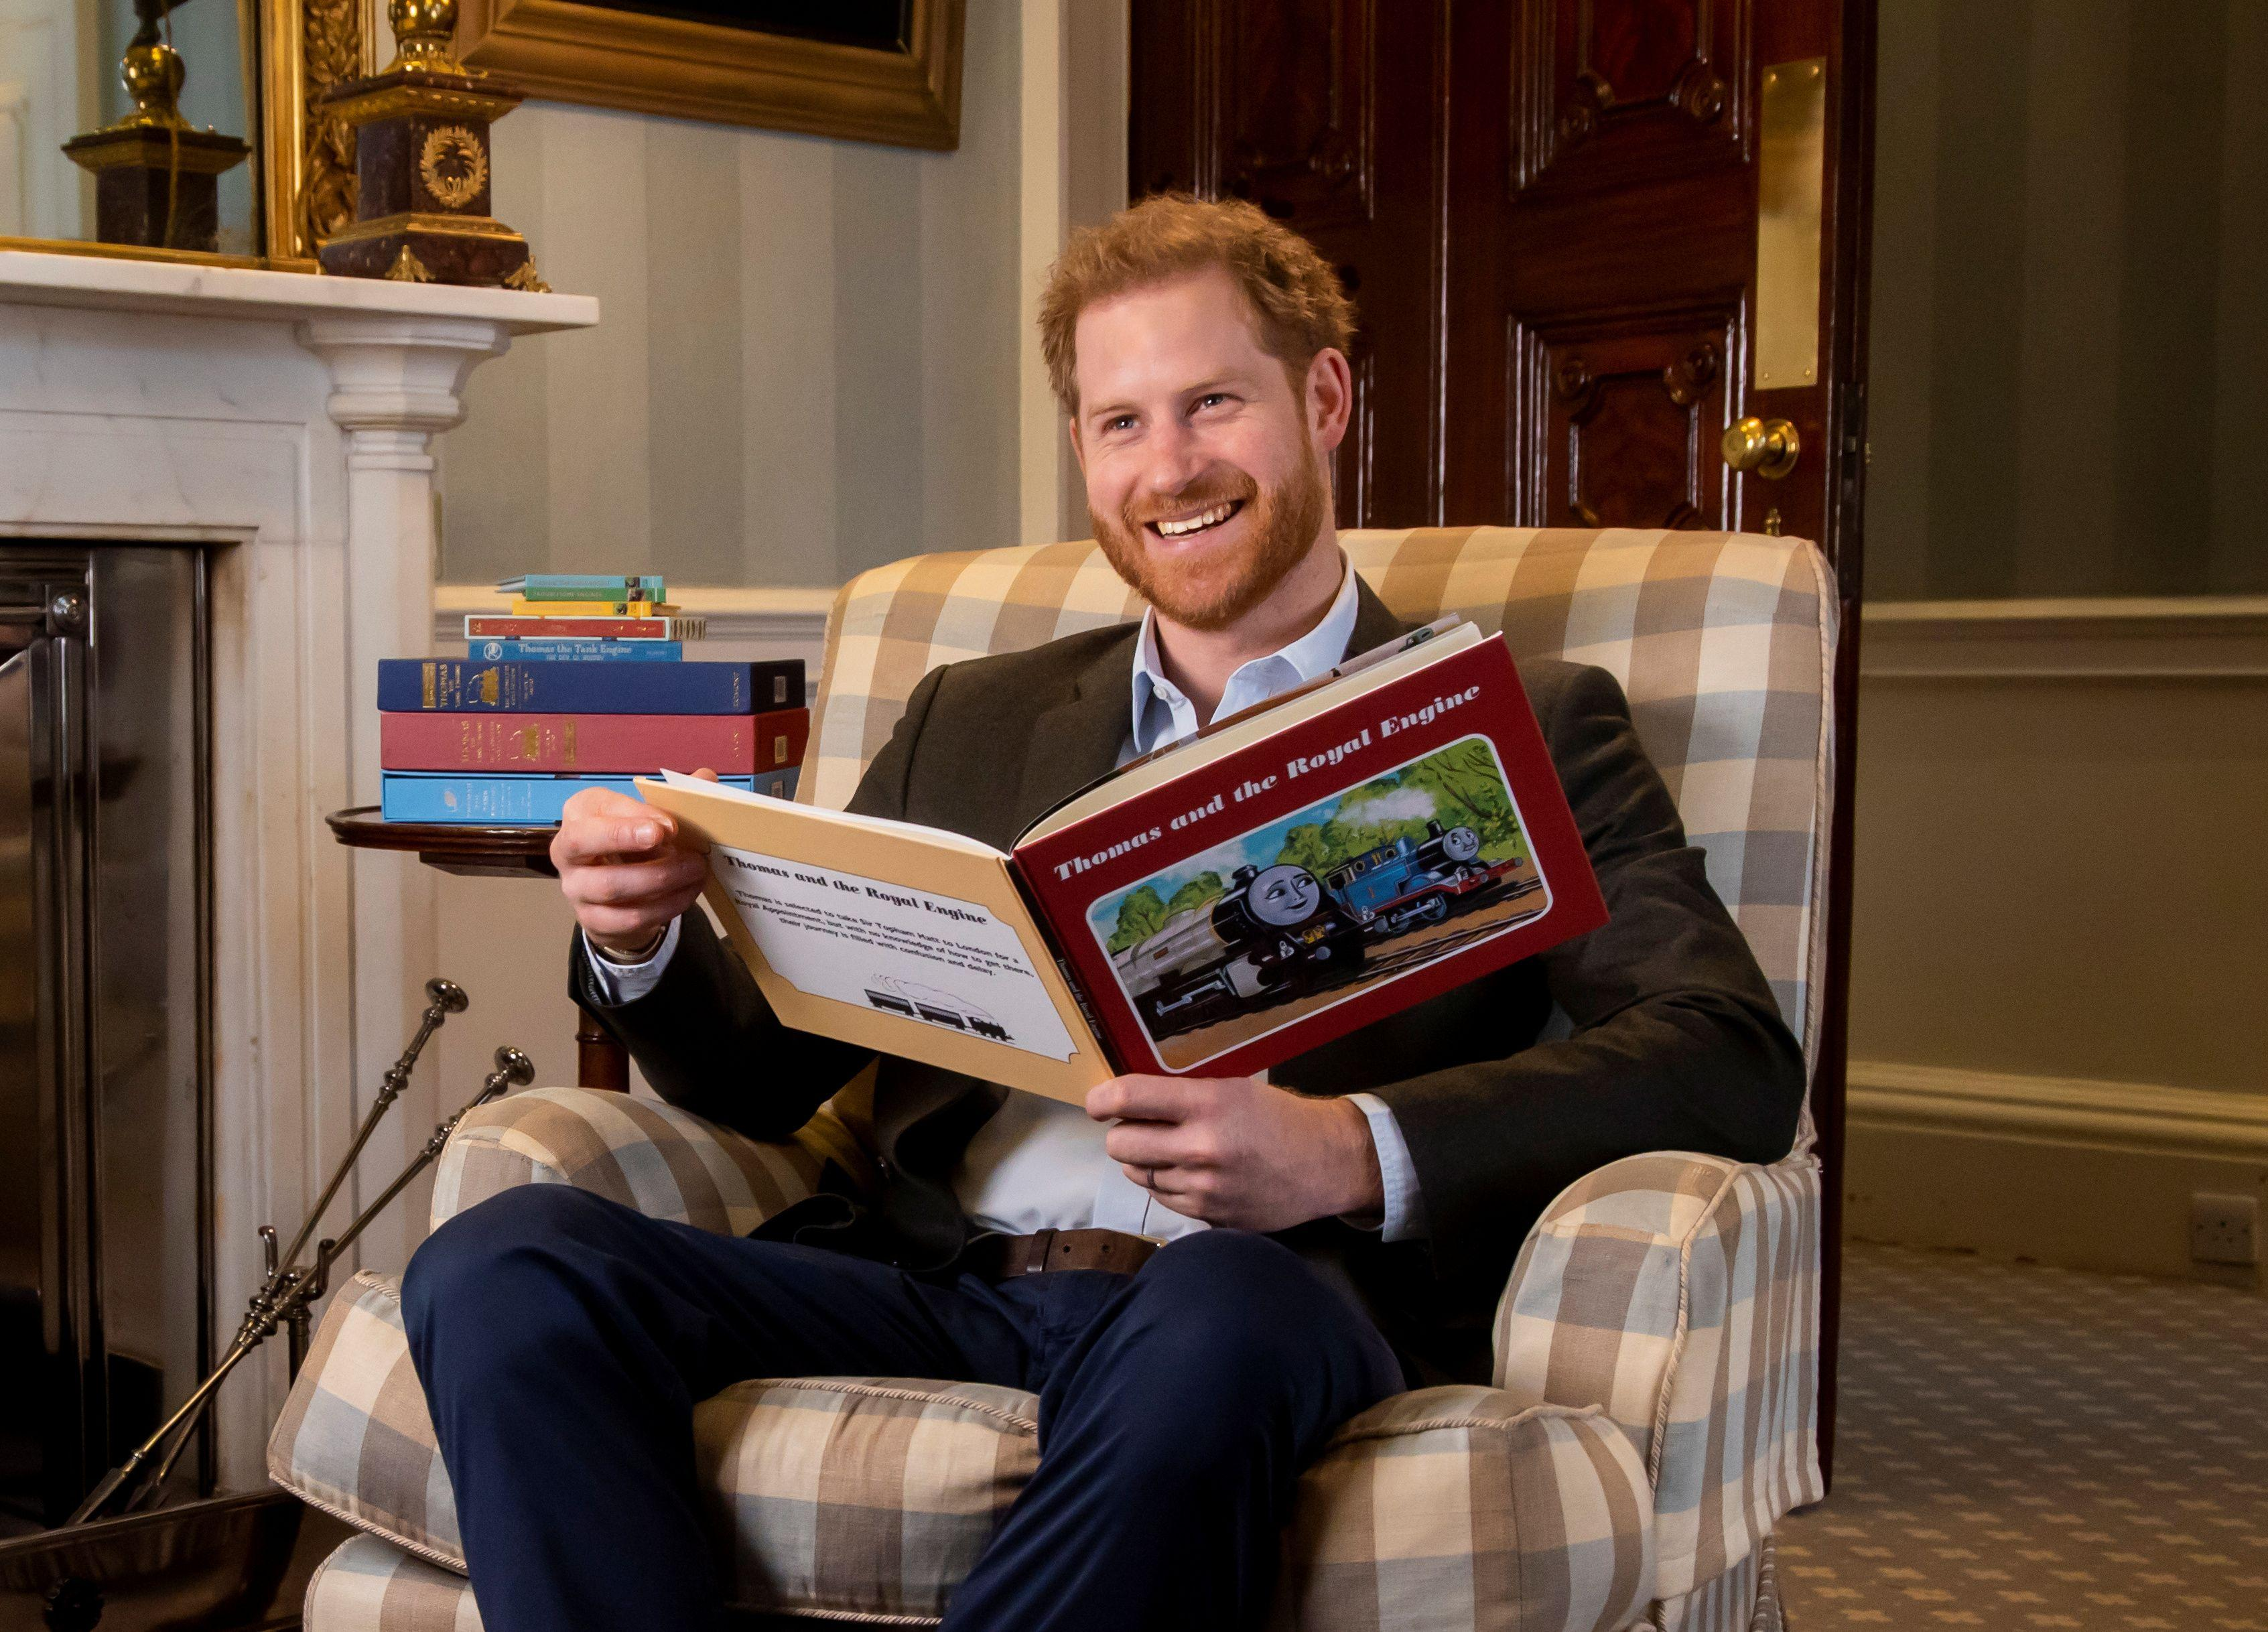 Prince Harry helps mark 75th anniversary of Thomas the Tank Engine